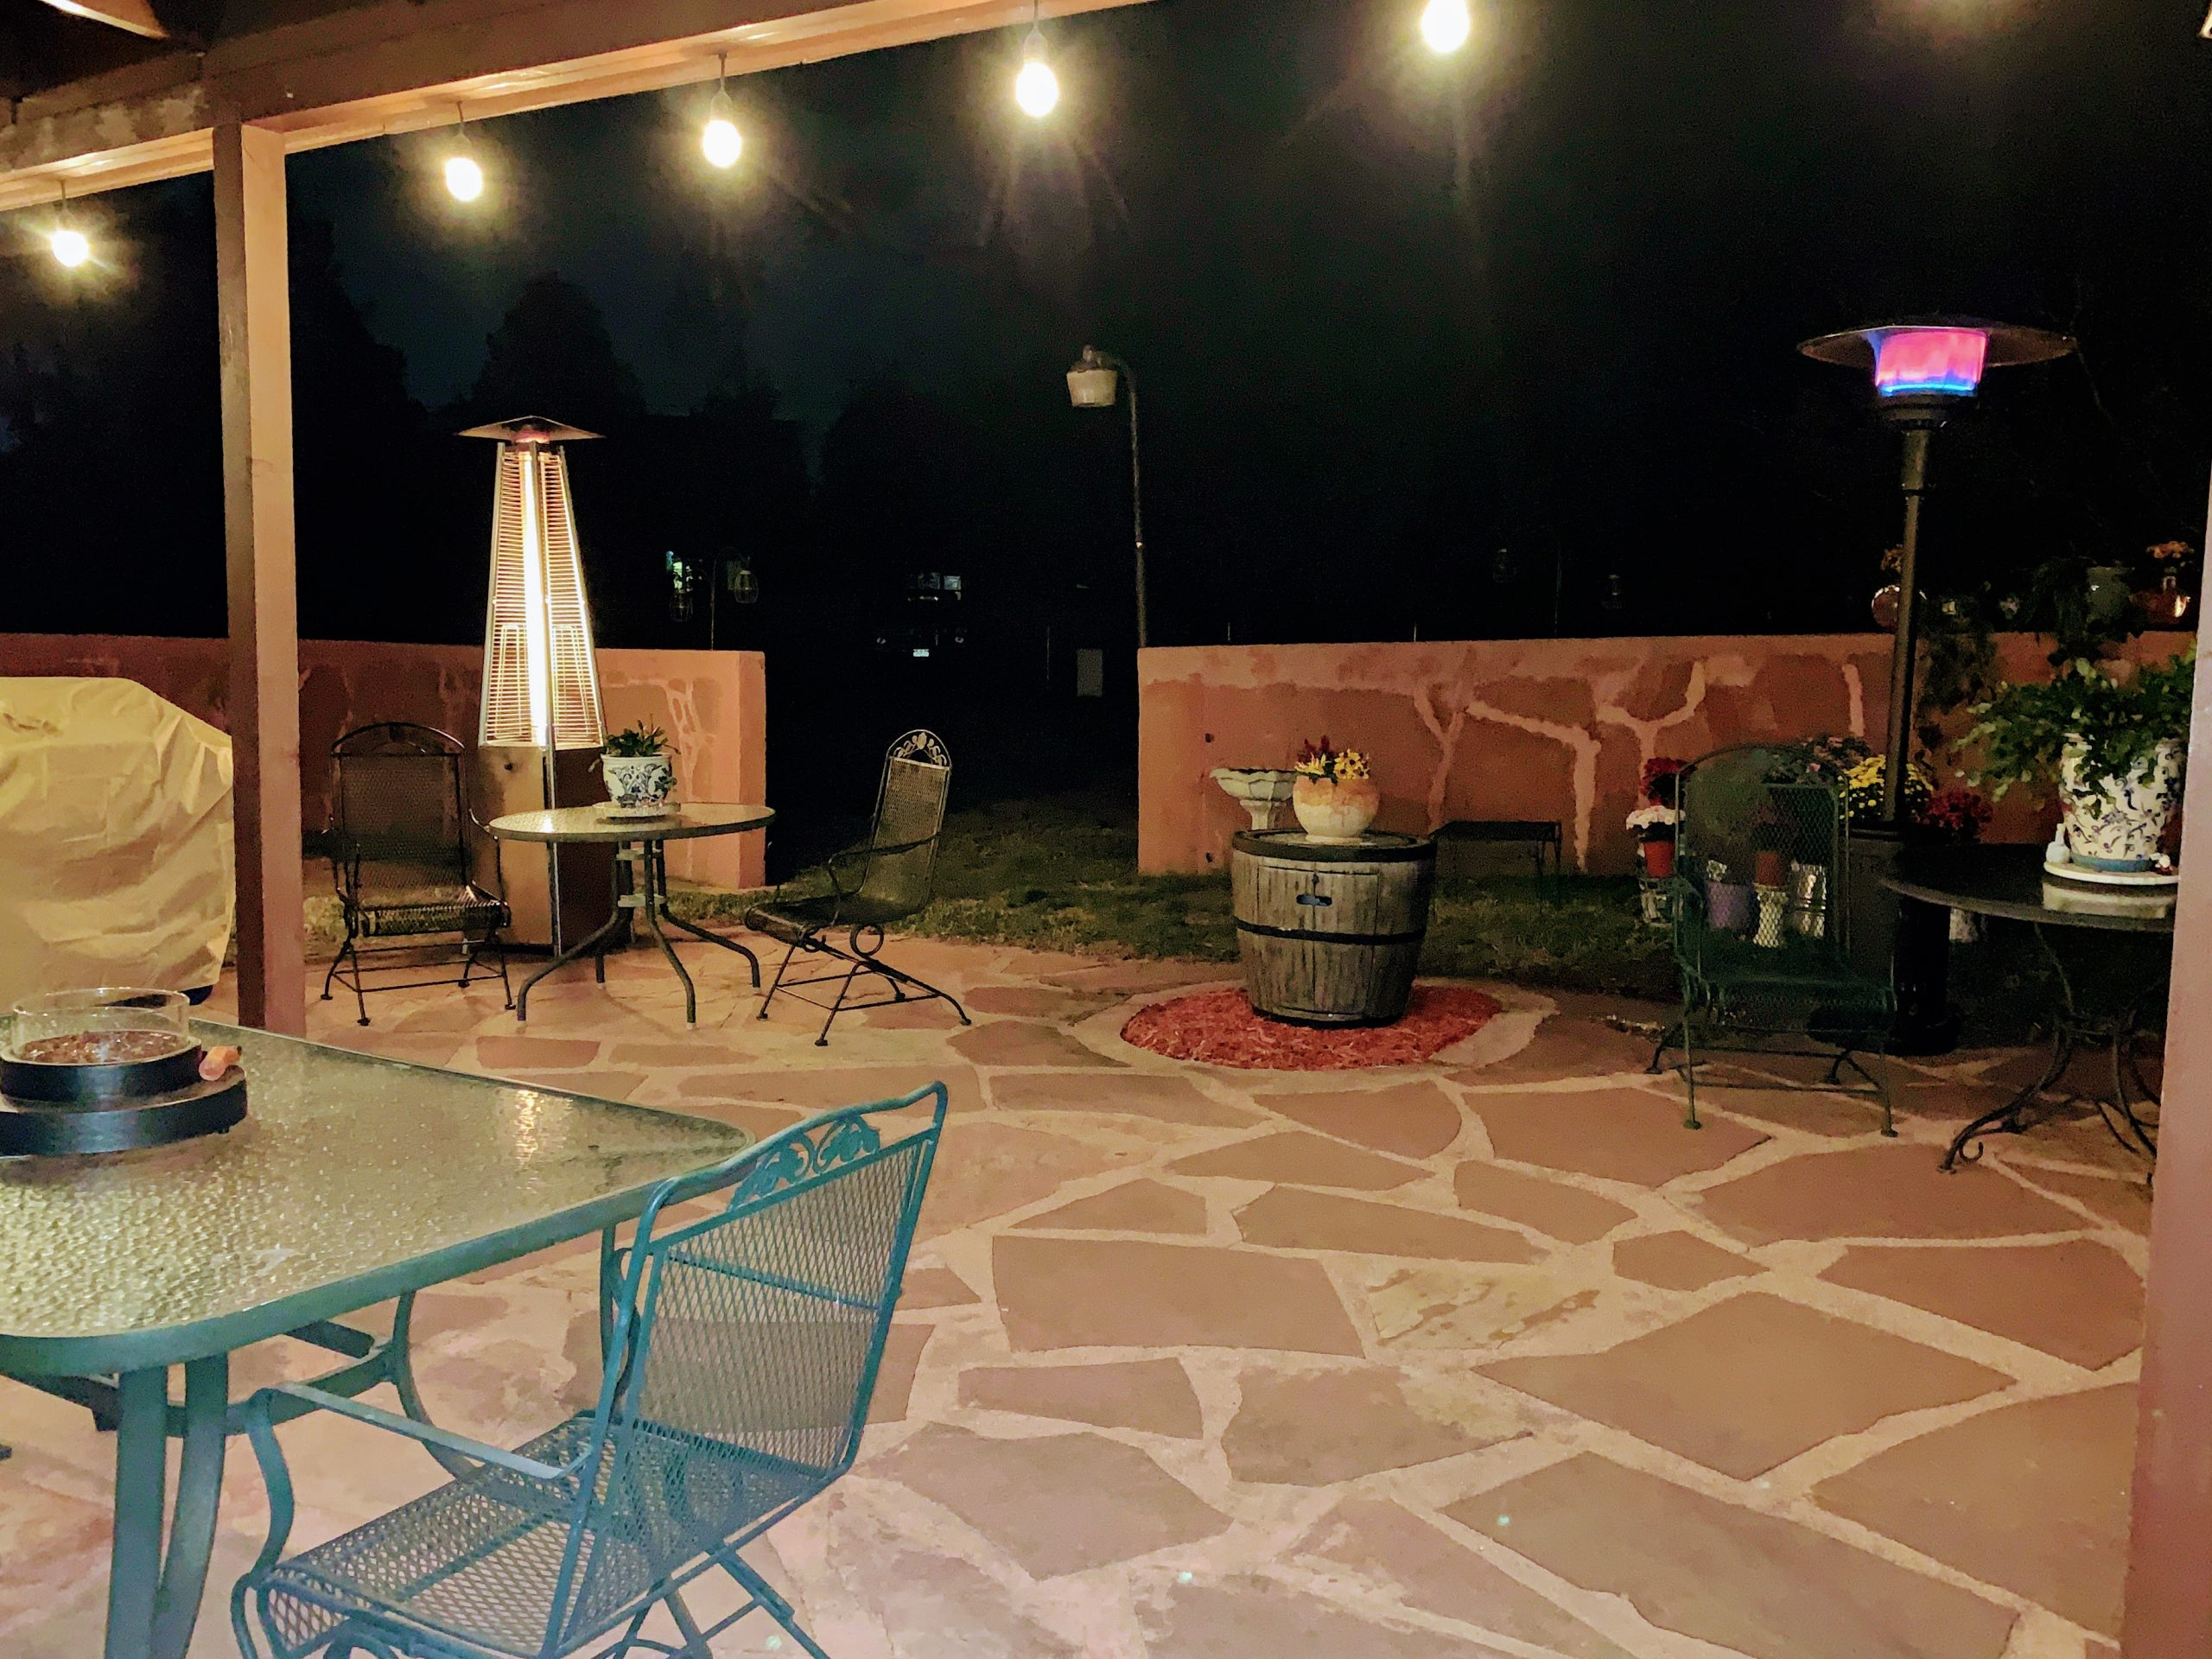 nighttime patio with heaters and lights